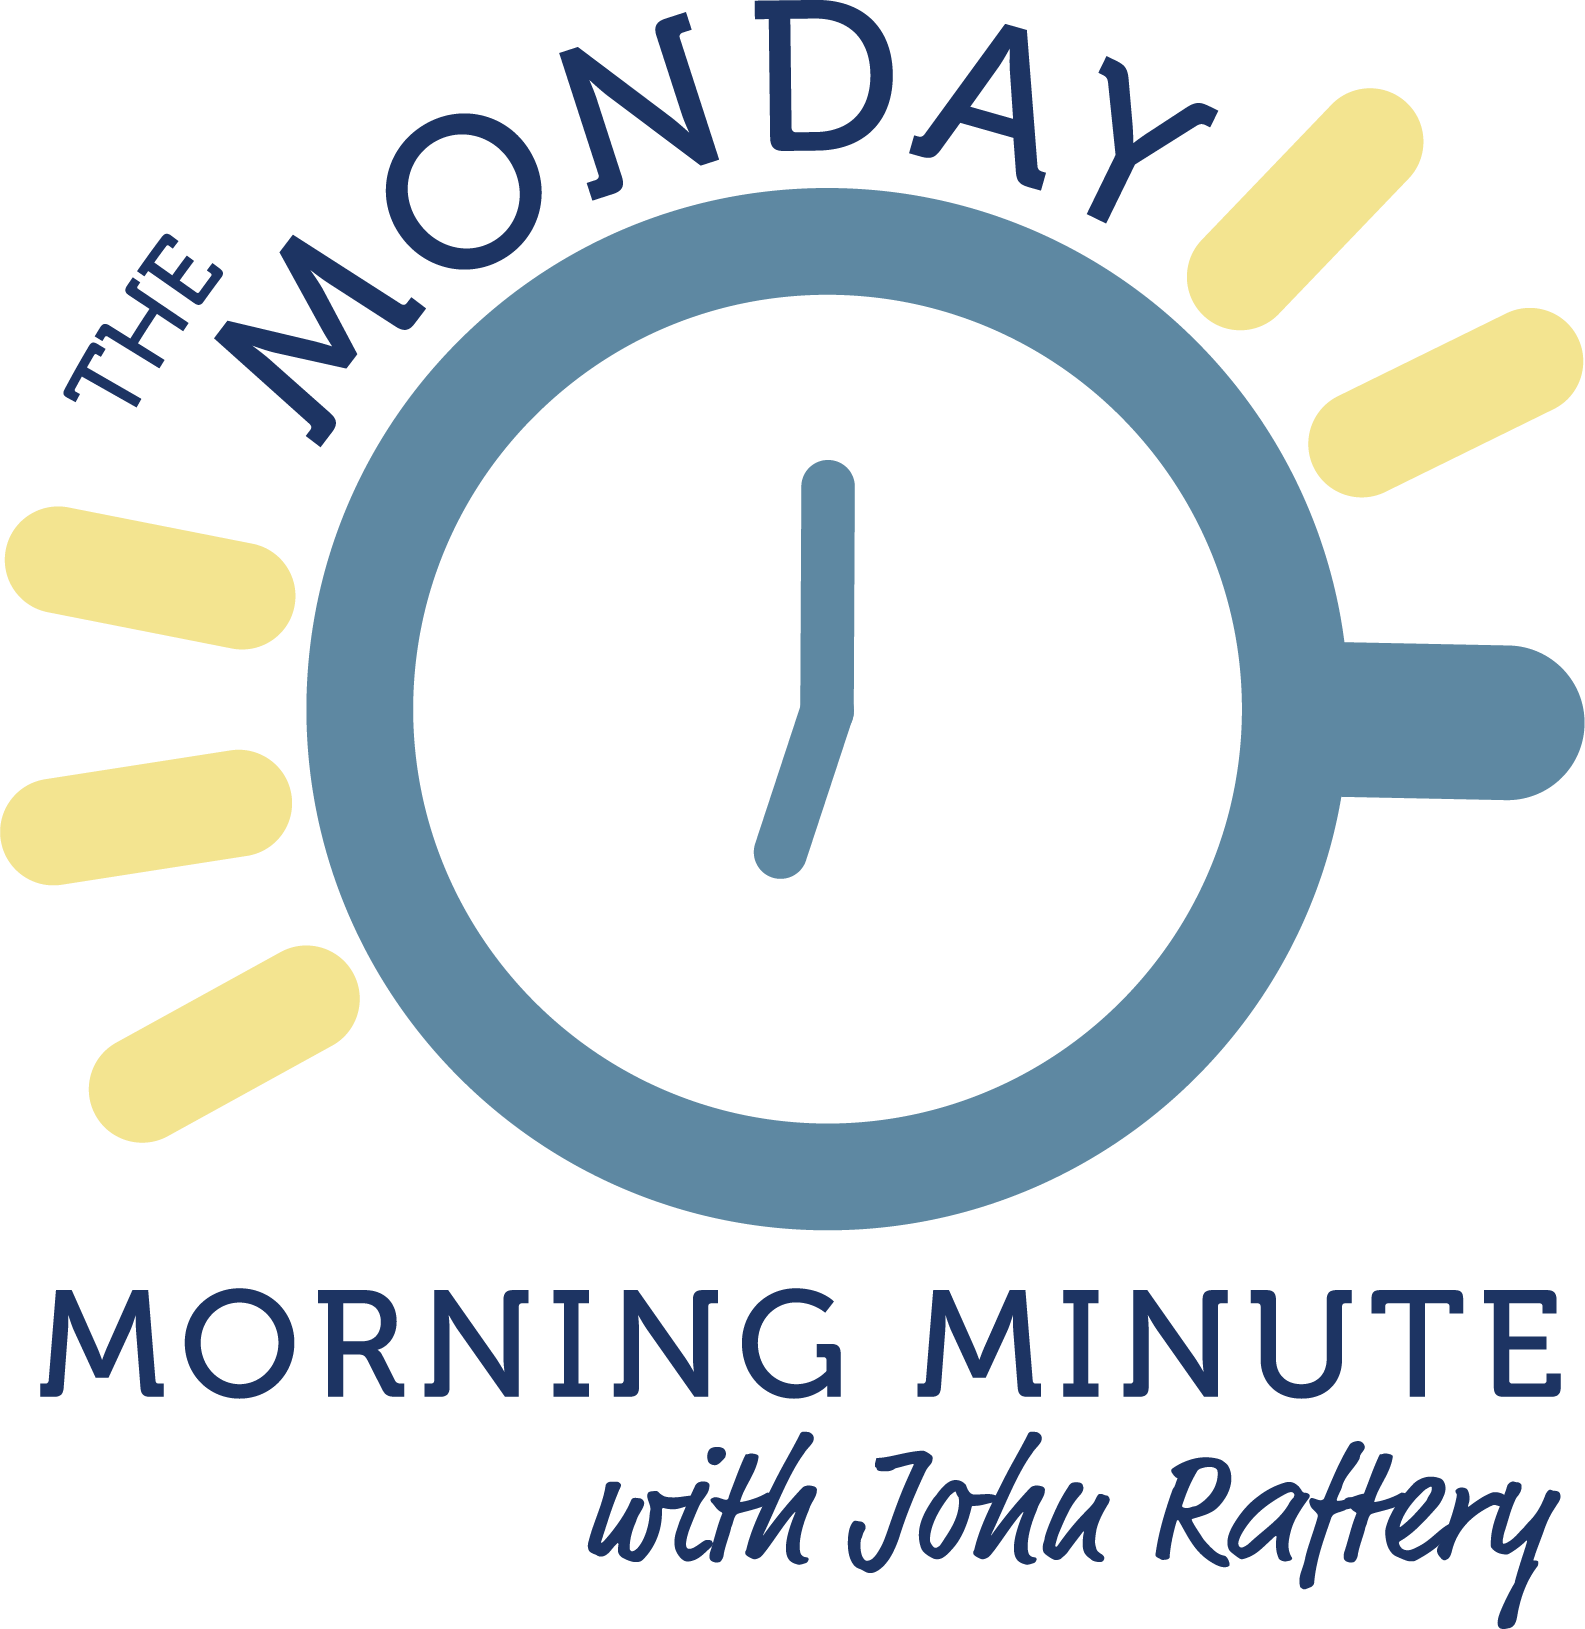 Monday_Morning_Minute-logo-021819b-01